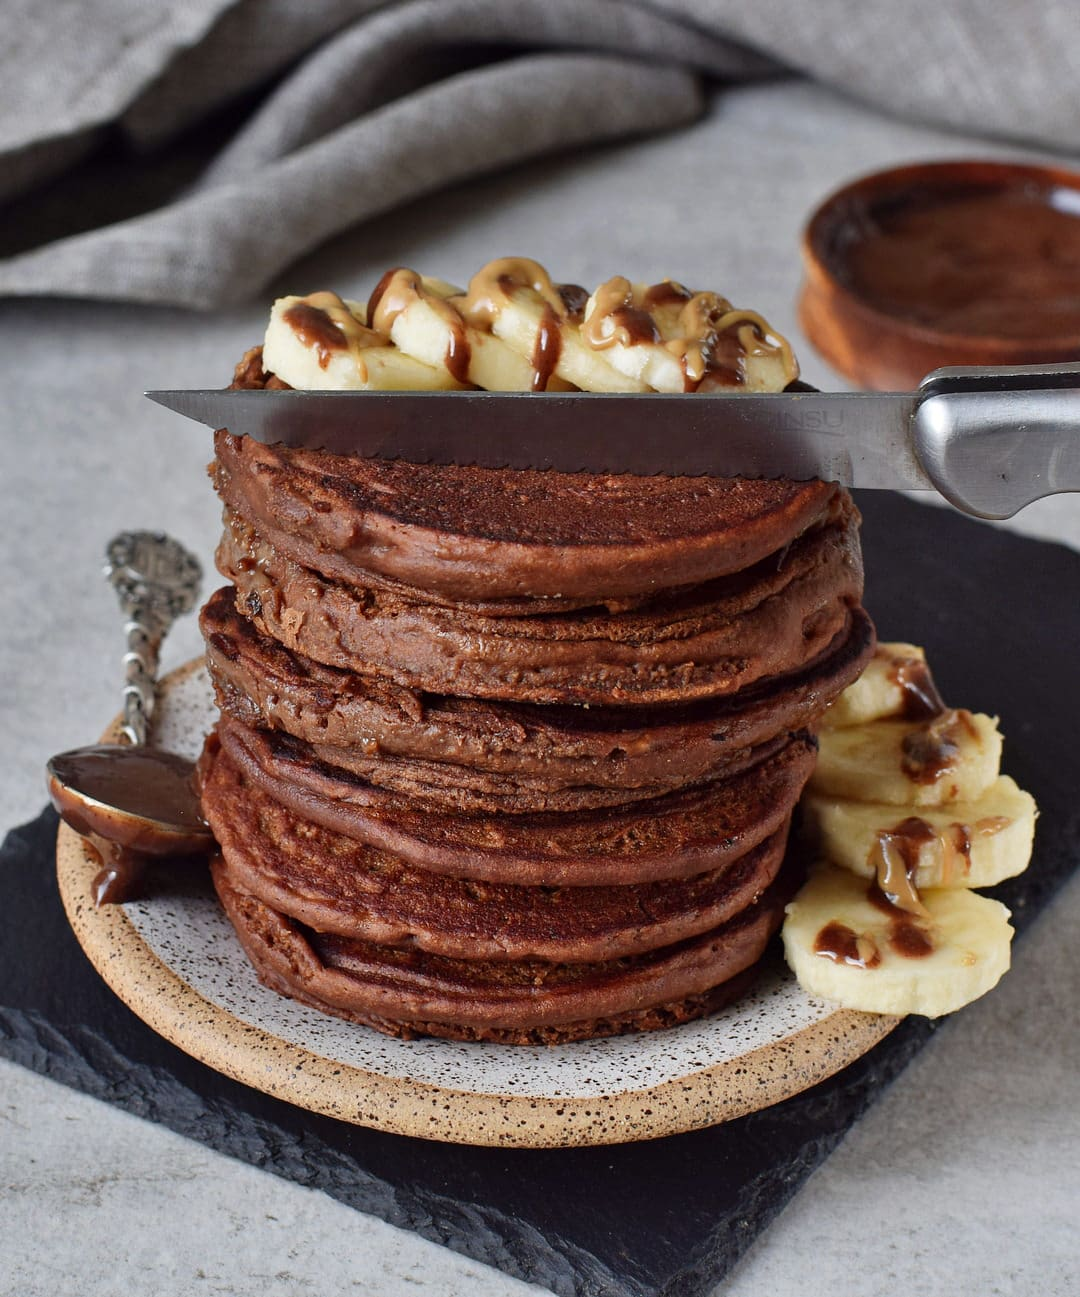 Gluten-free caramel chocolate pancakes with banana slices